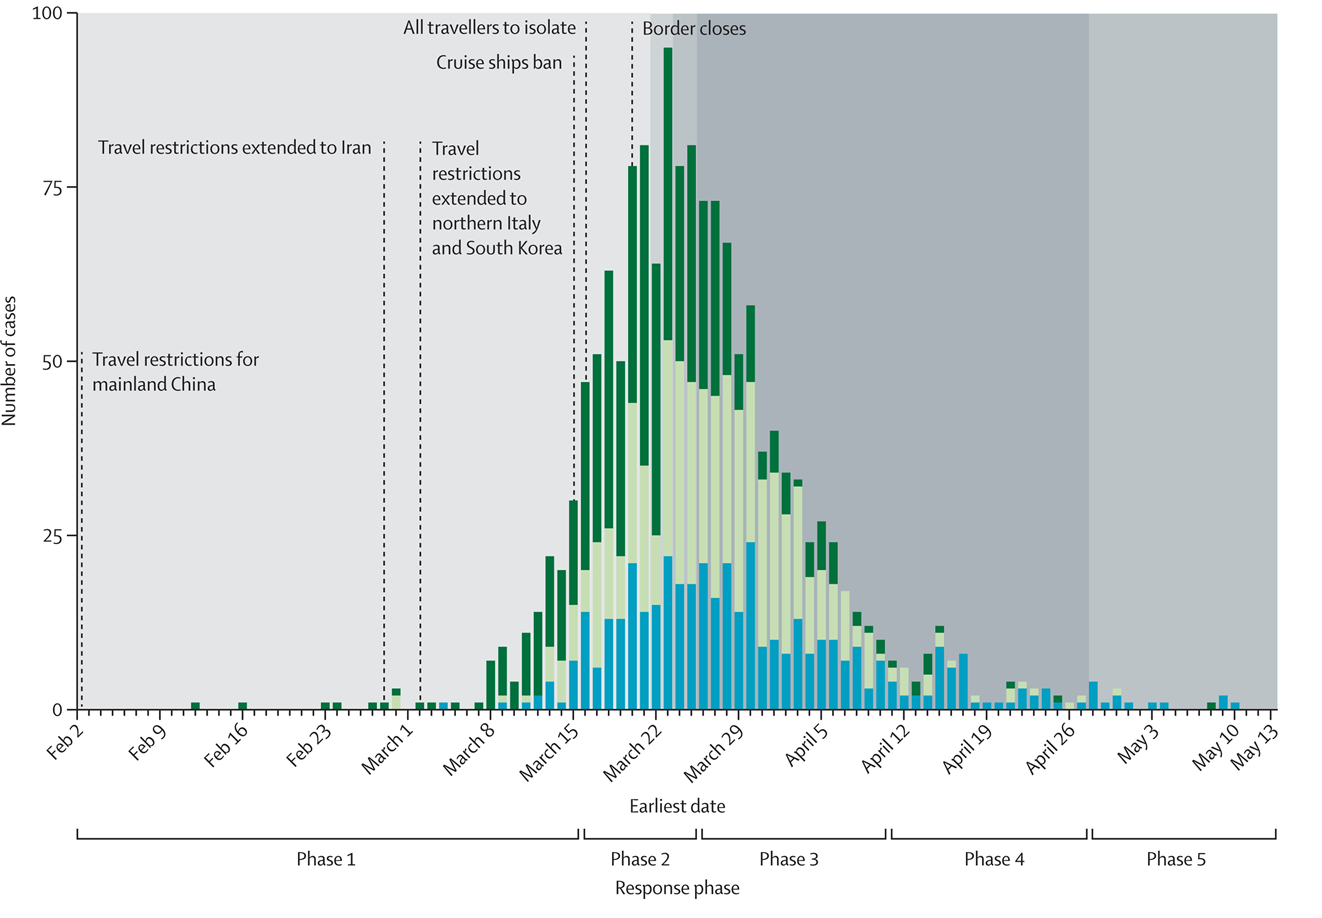 Epidemic curve of confirmed and probable COVID-19 cases in New Zealand by source of infection (imported cases, import-related cases, and locally acquired cases) and major NPIs